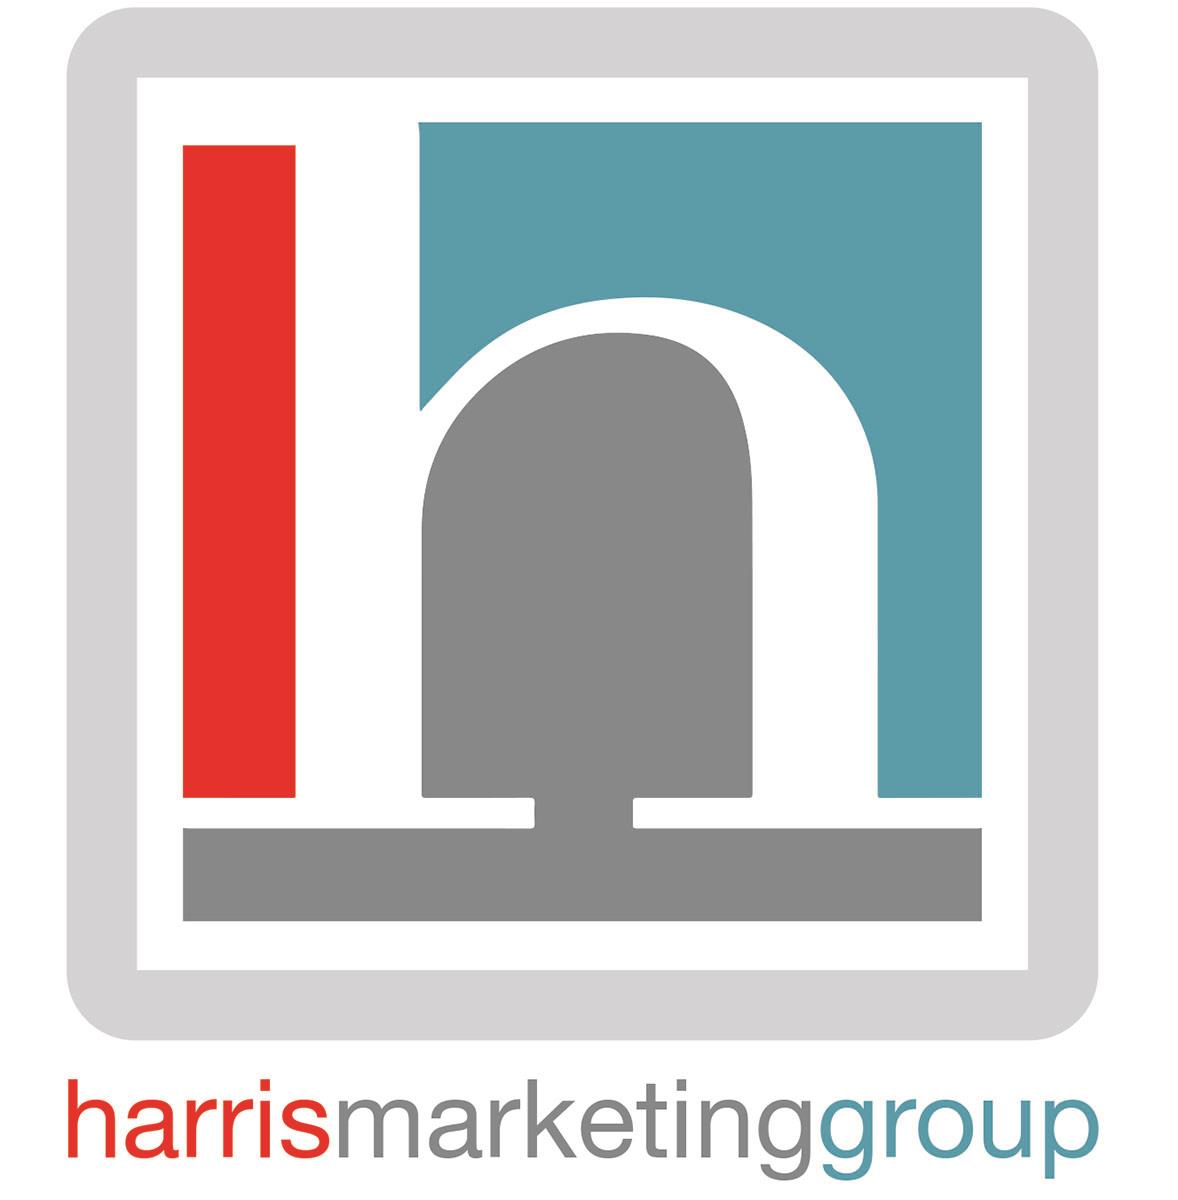 Harris Marketing Group